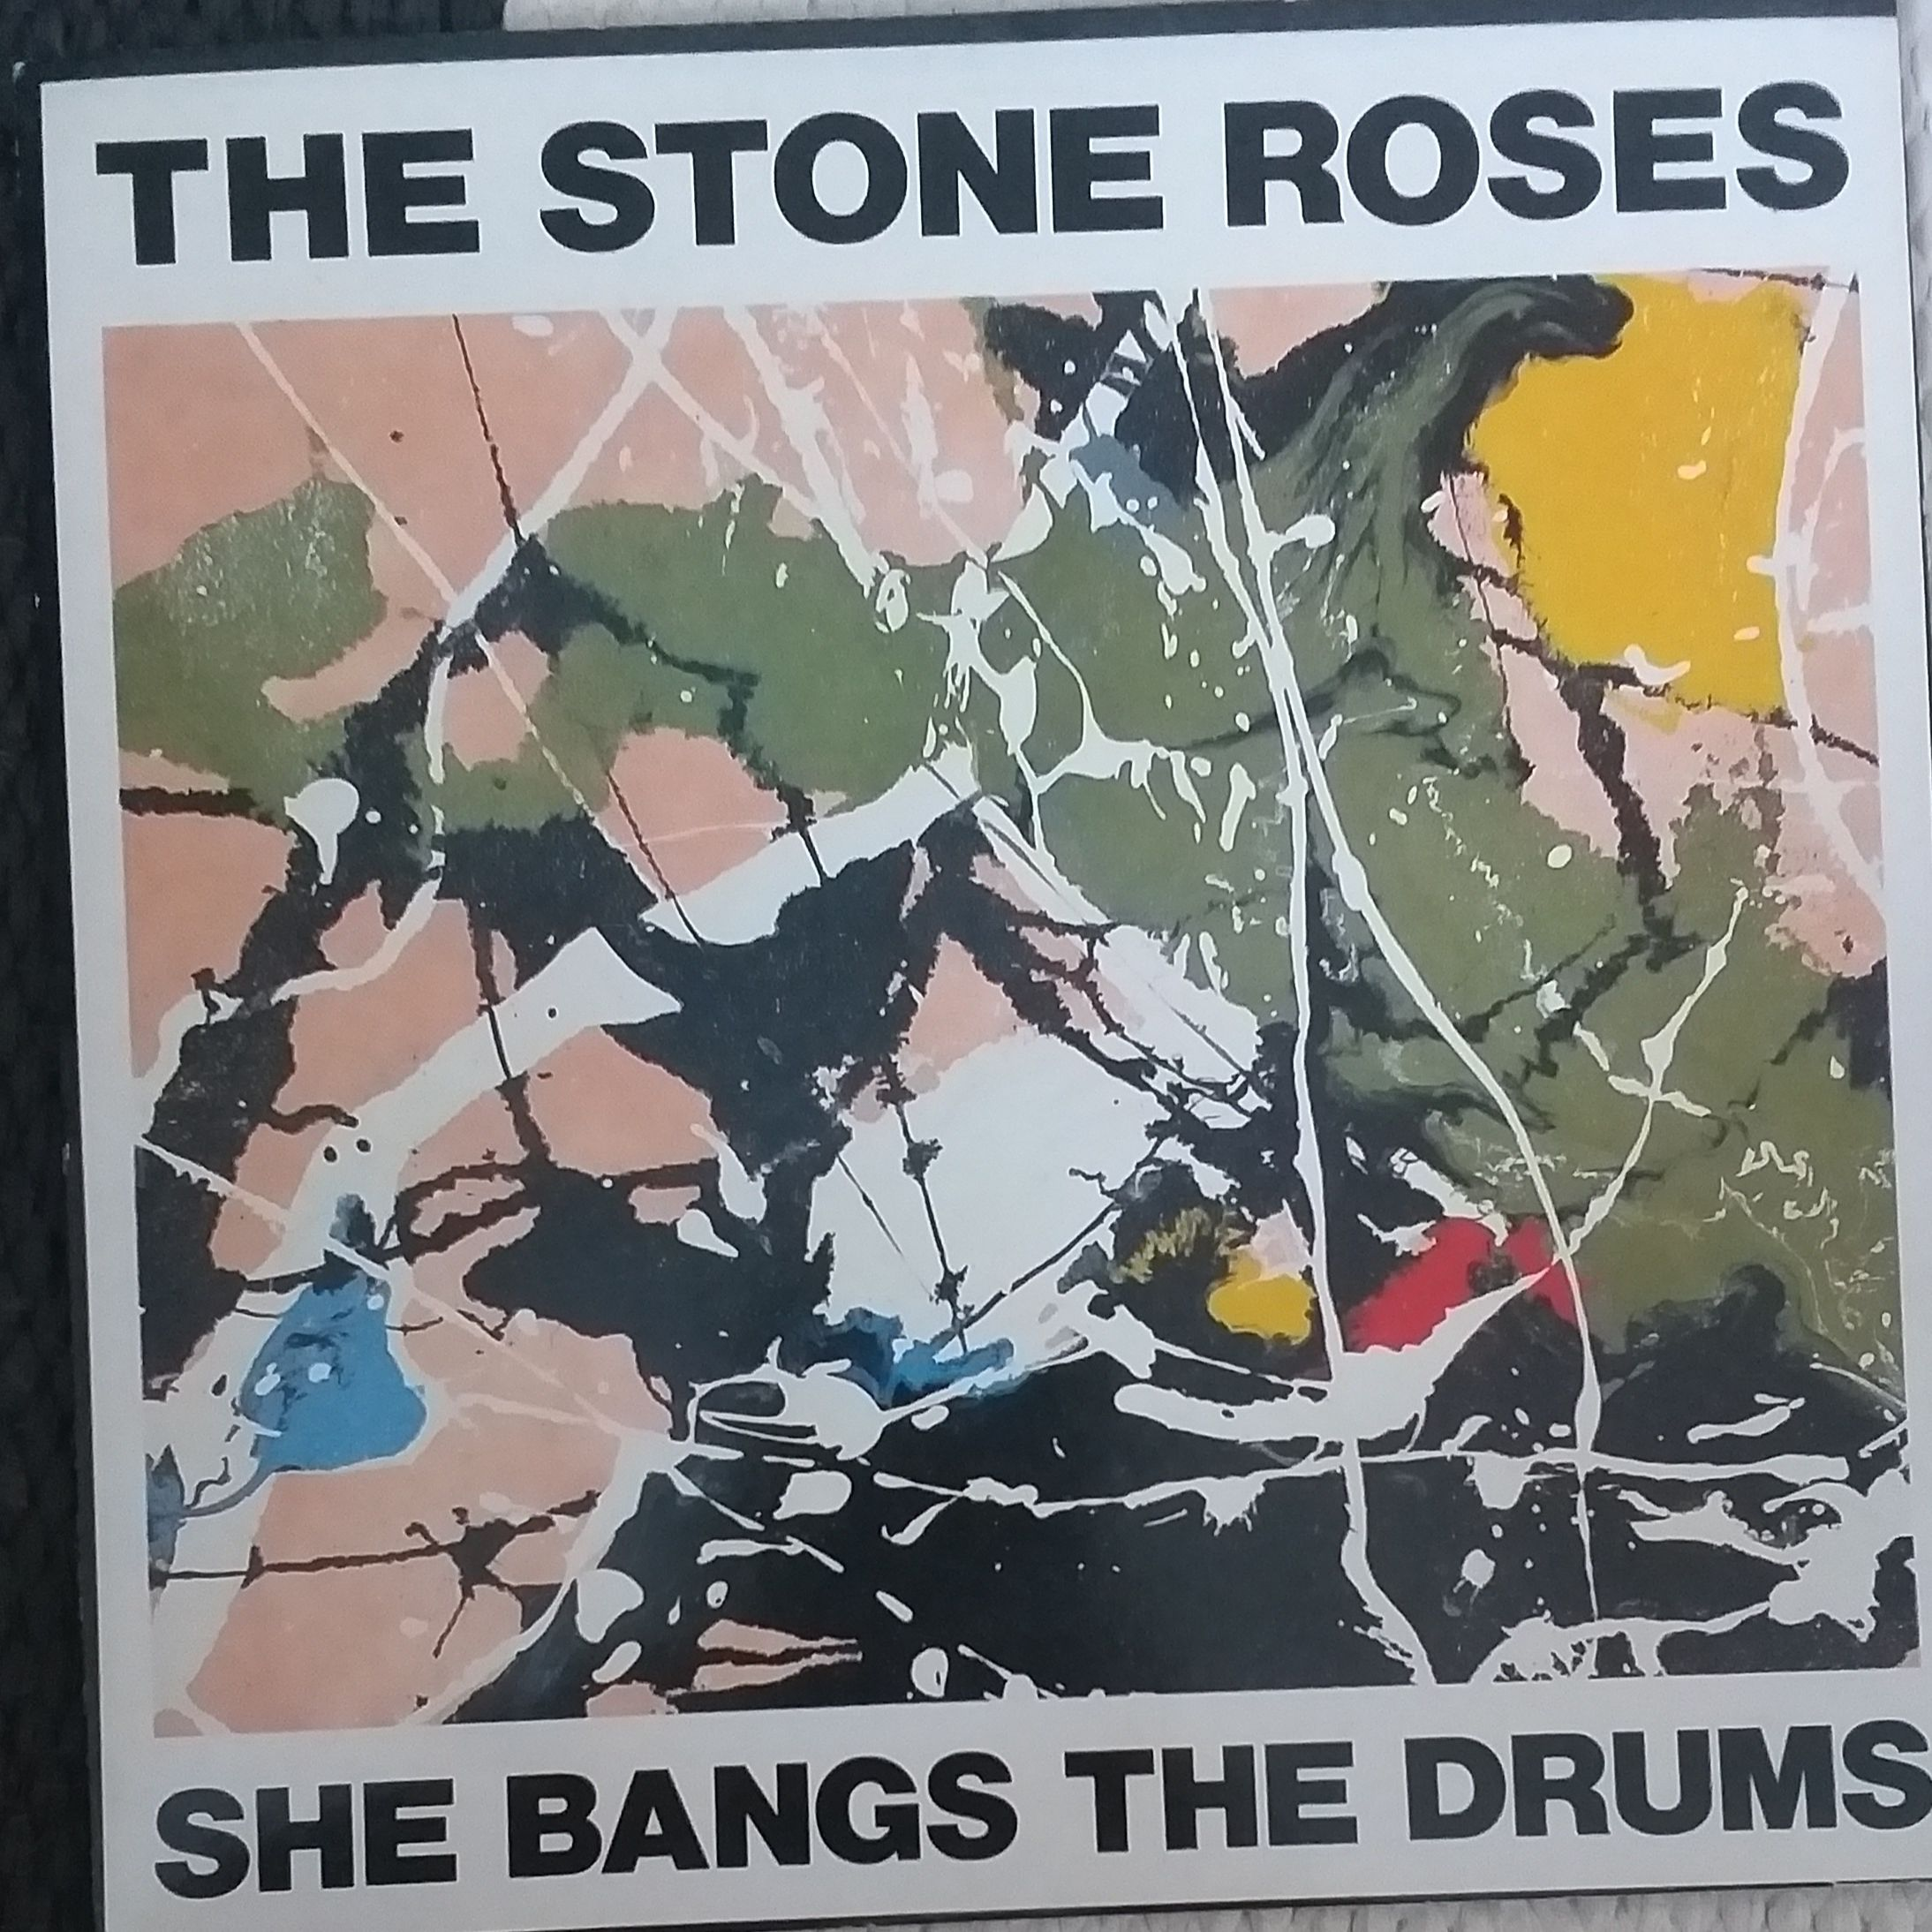 The stone roses She bangs the drum LP undefined